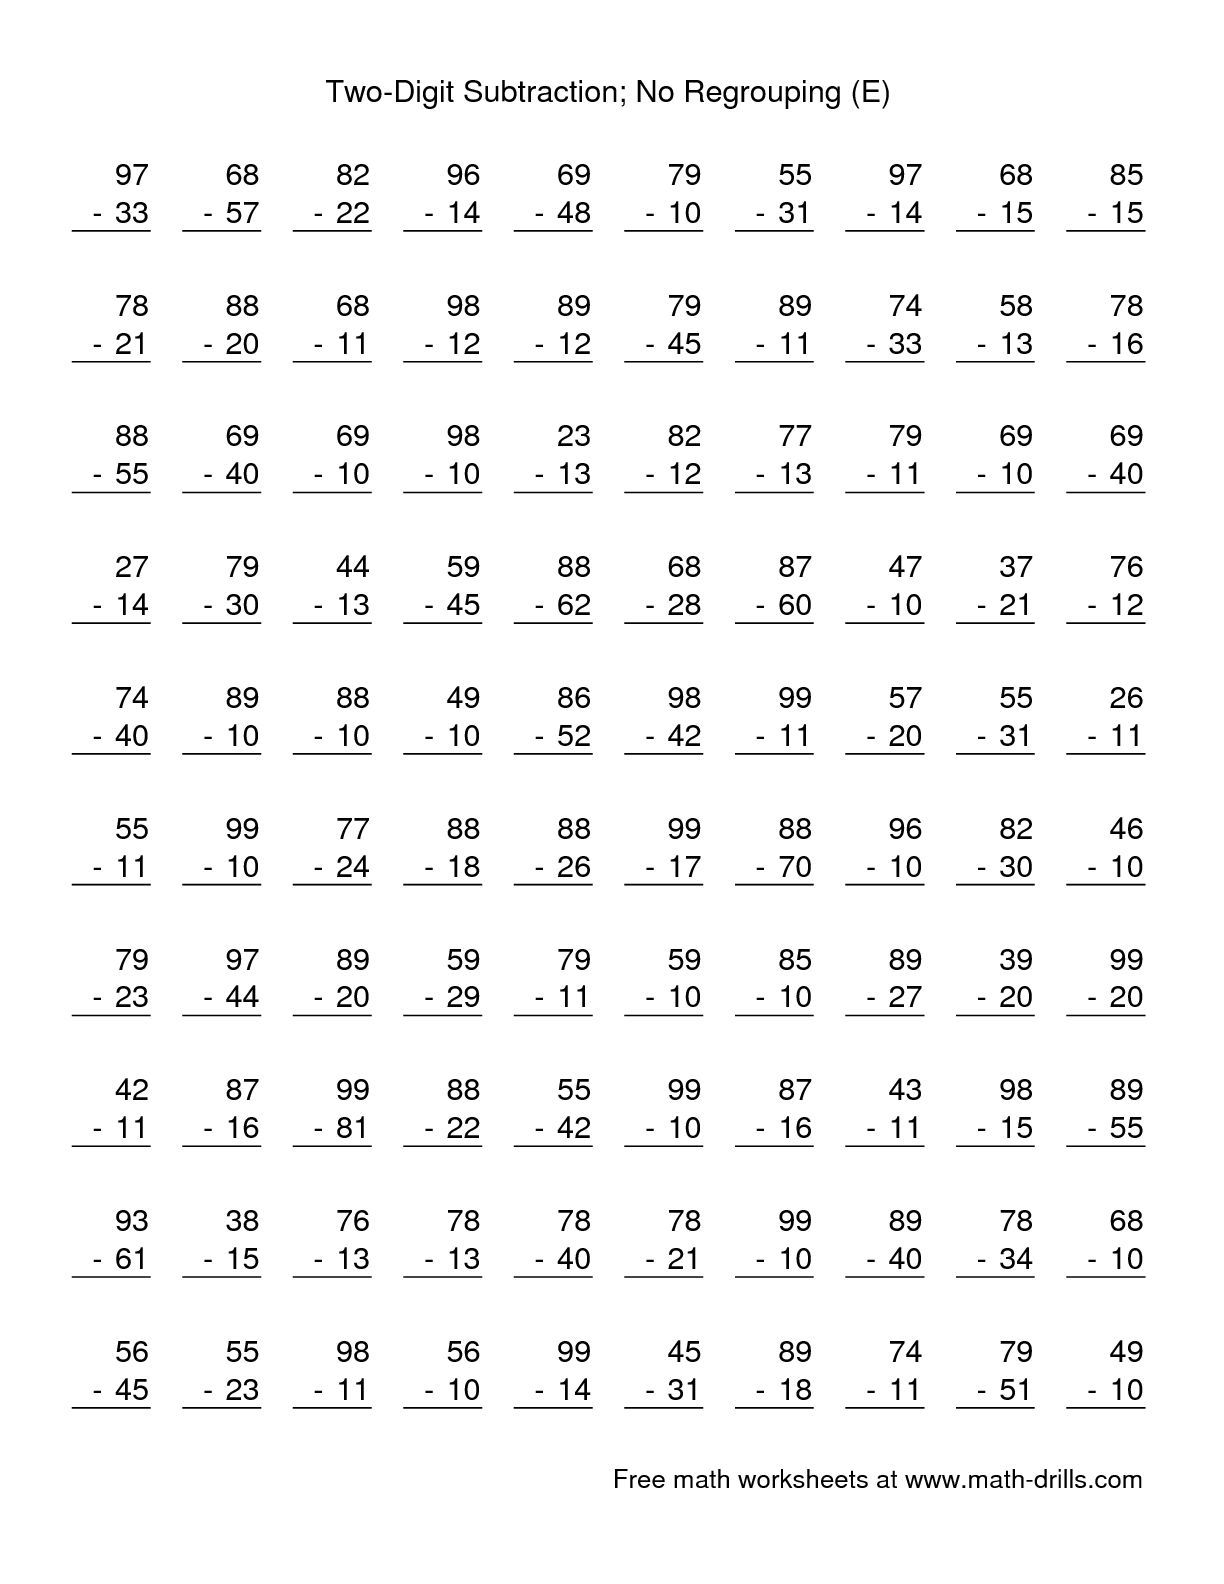 The Two Digit Subtraction With No Regrouping 100 Questions E Subtraction Worksheet